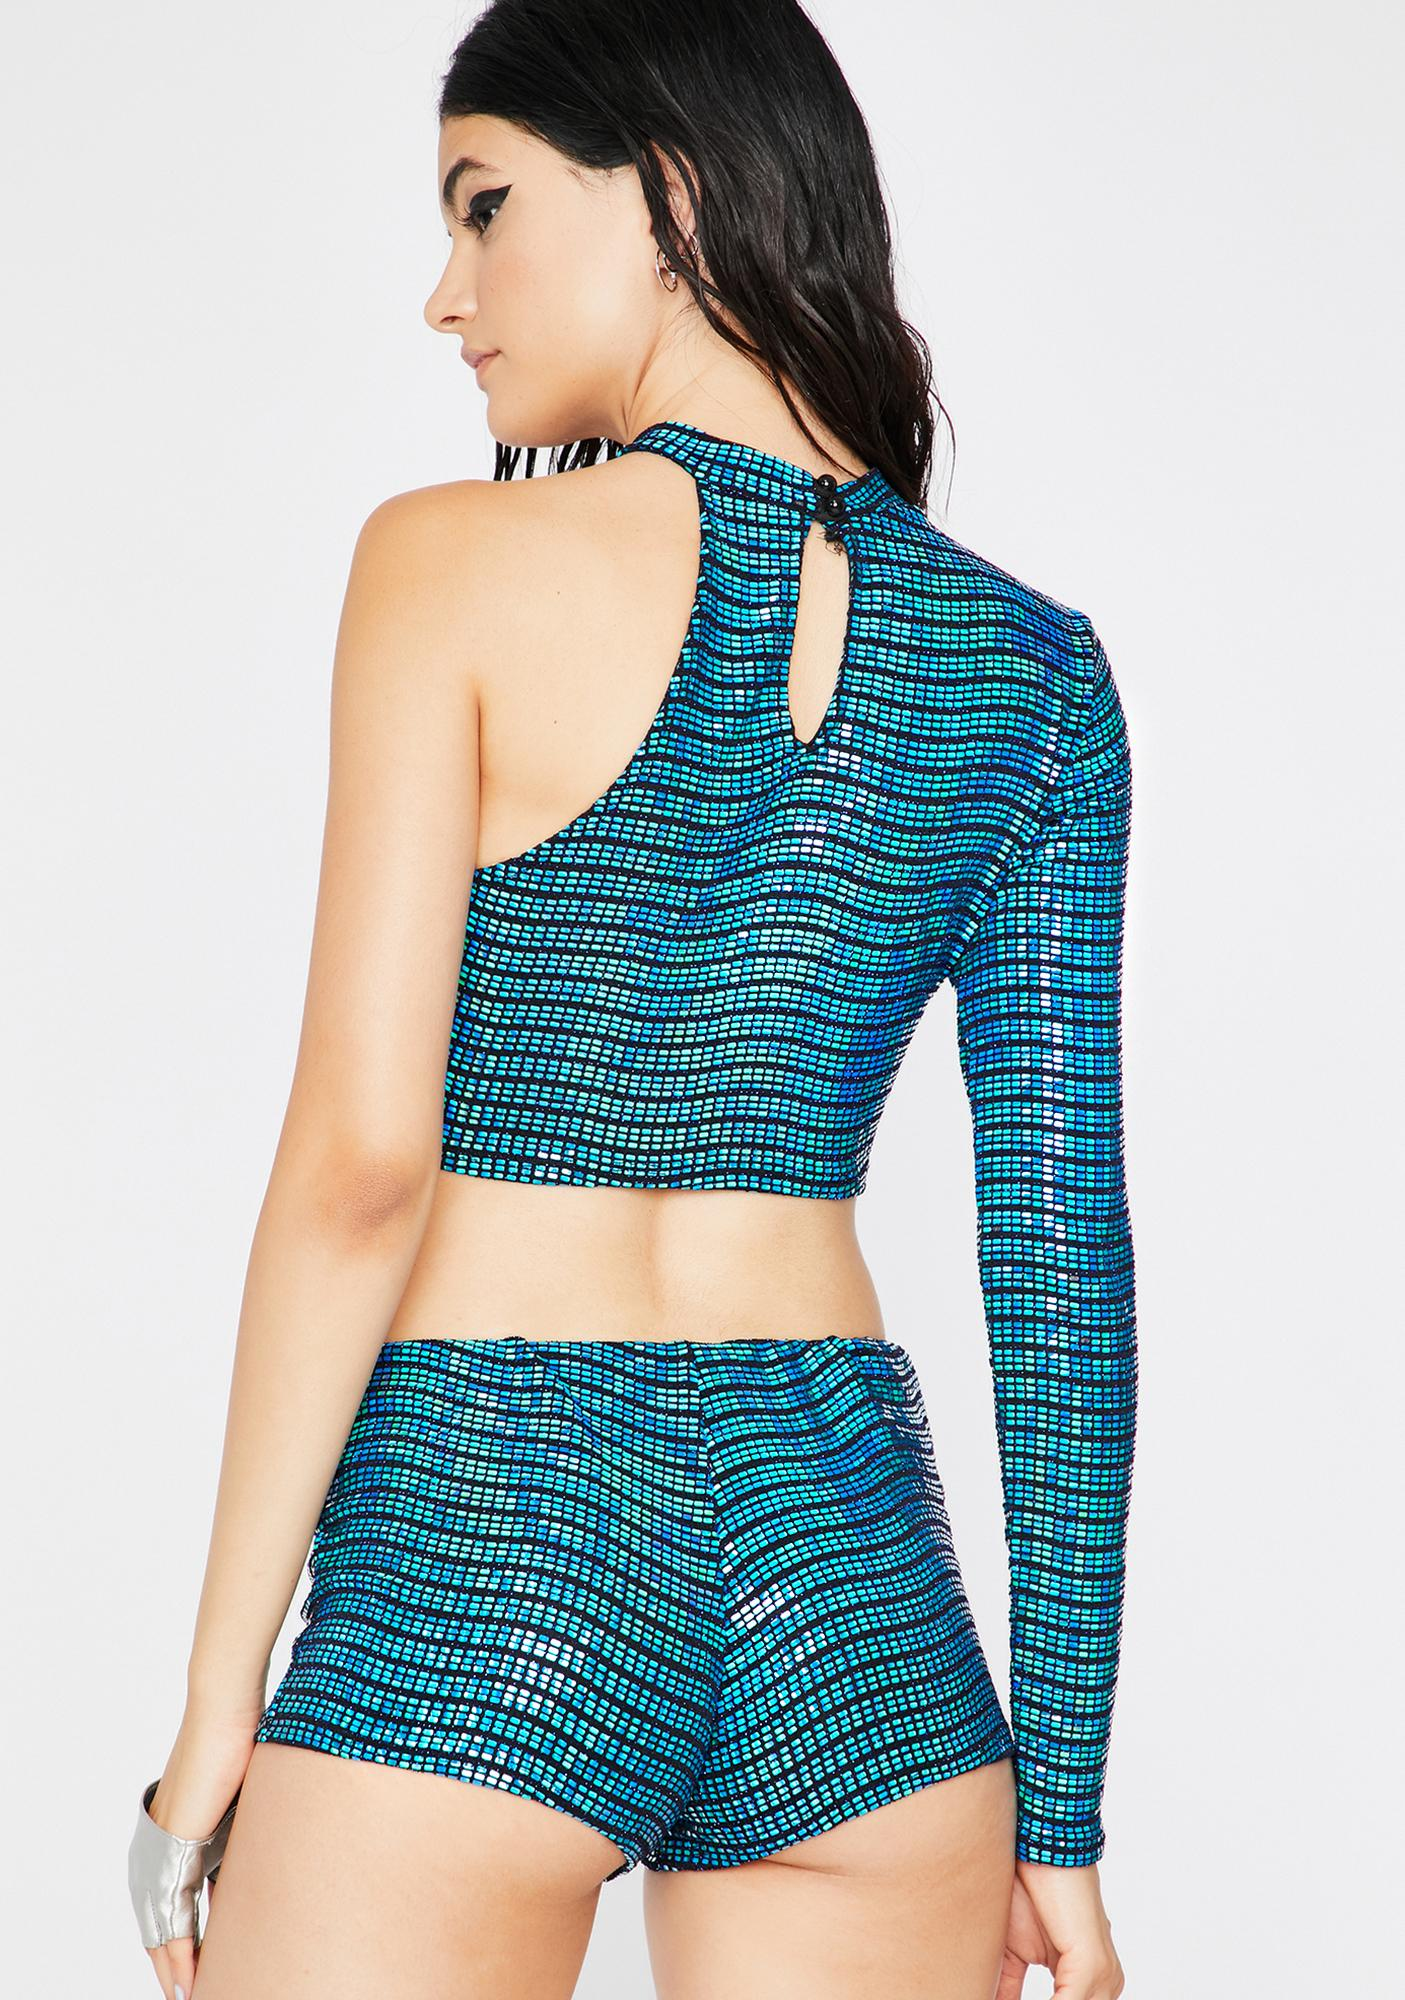 Aqua Hyperspace Sequin Set